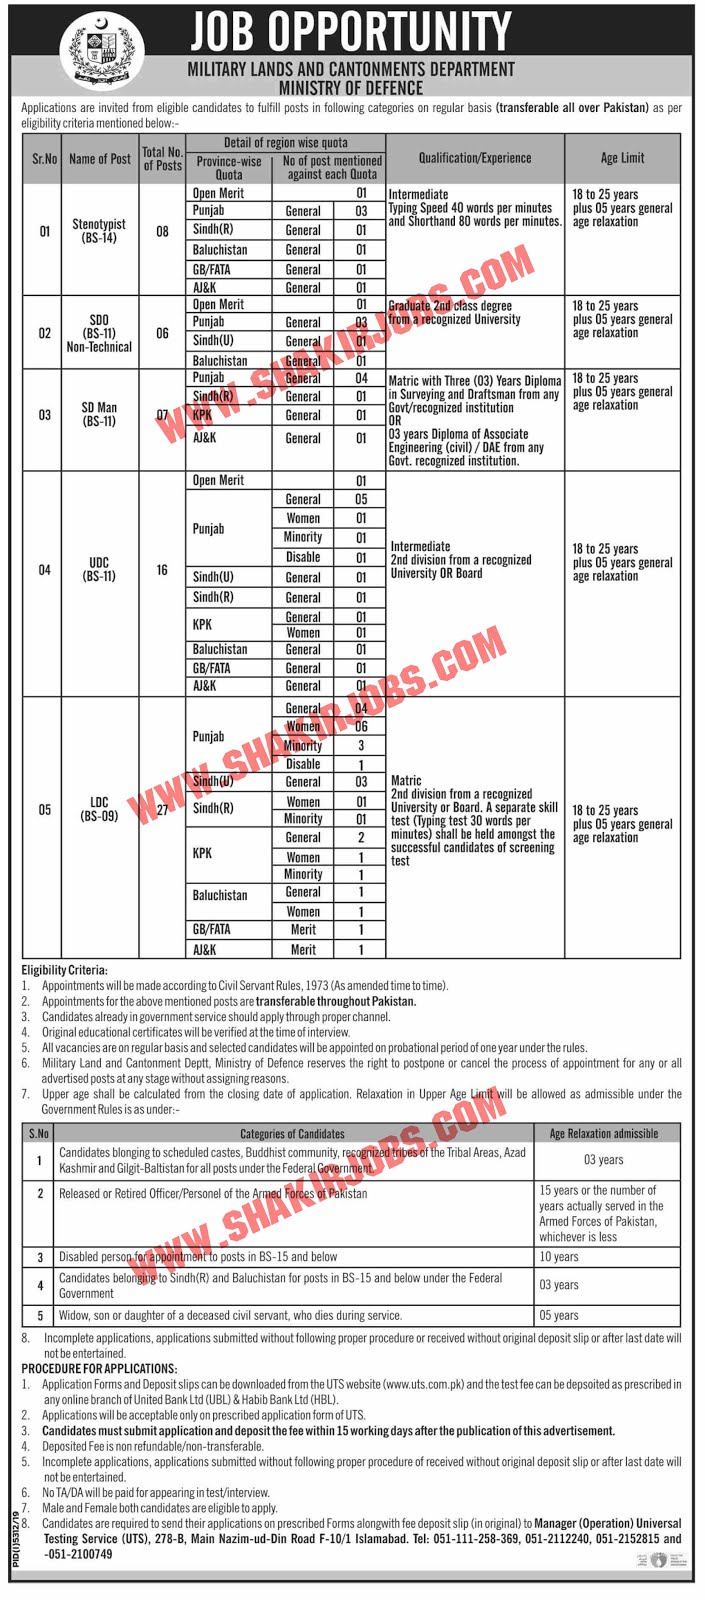 Military Lands And Cantonments Department Jobs April 2020 (64 Posts)